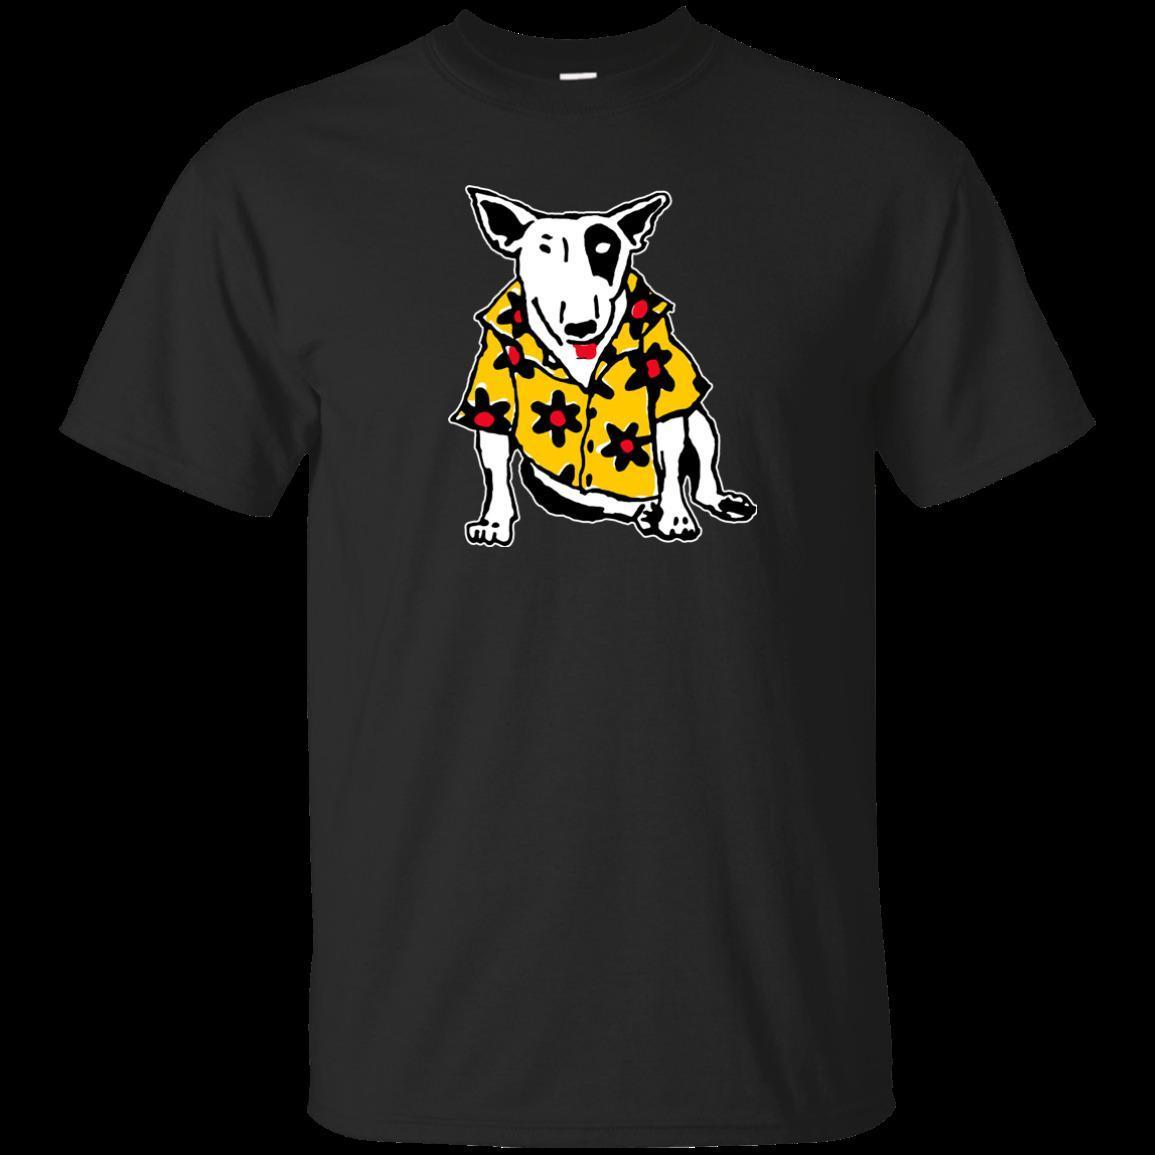 Spuds, Bull Terrier, MacKenzie, McKenzie, Retro, 1980's, Bud Light, Dog  Short Sleeves Cotton Free Shipping O-Neck Sunlight Men T-Shirt